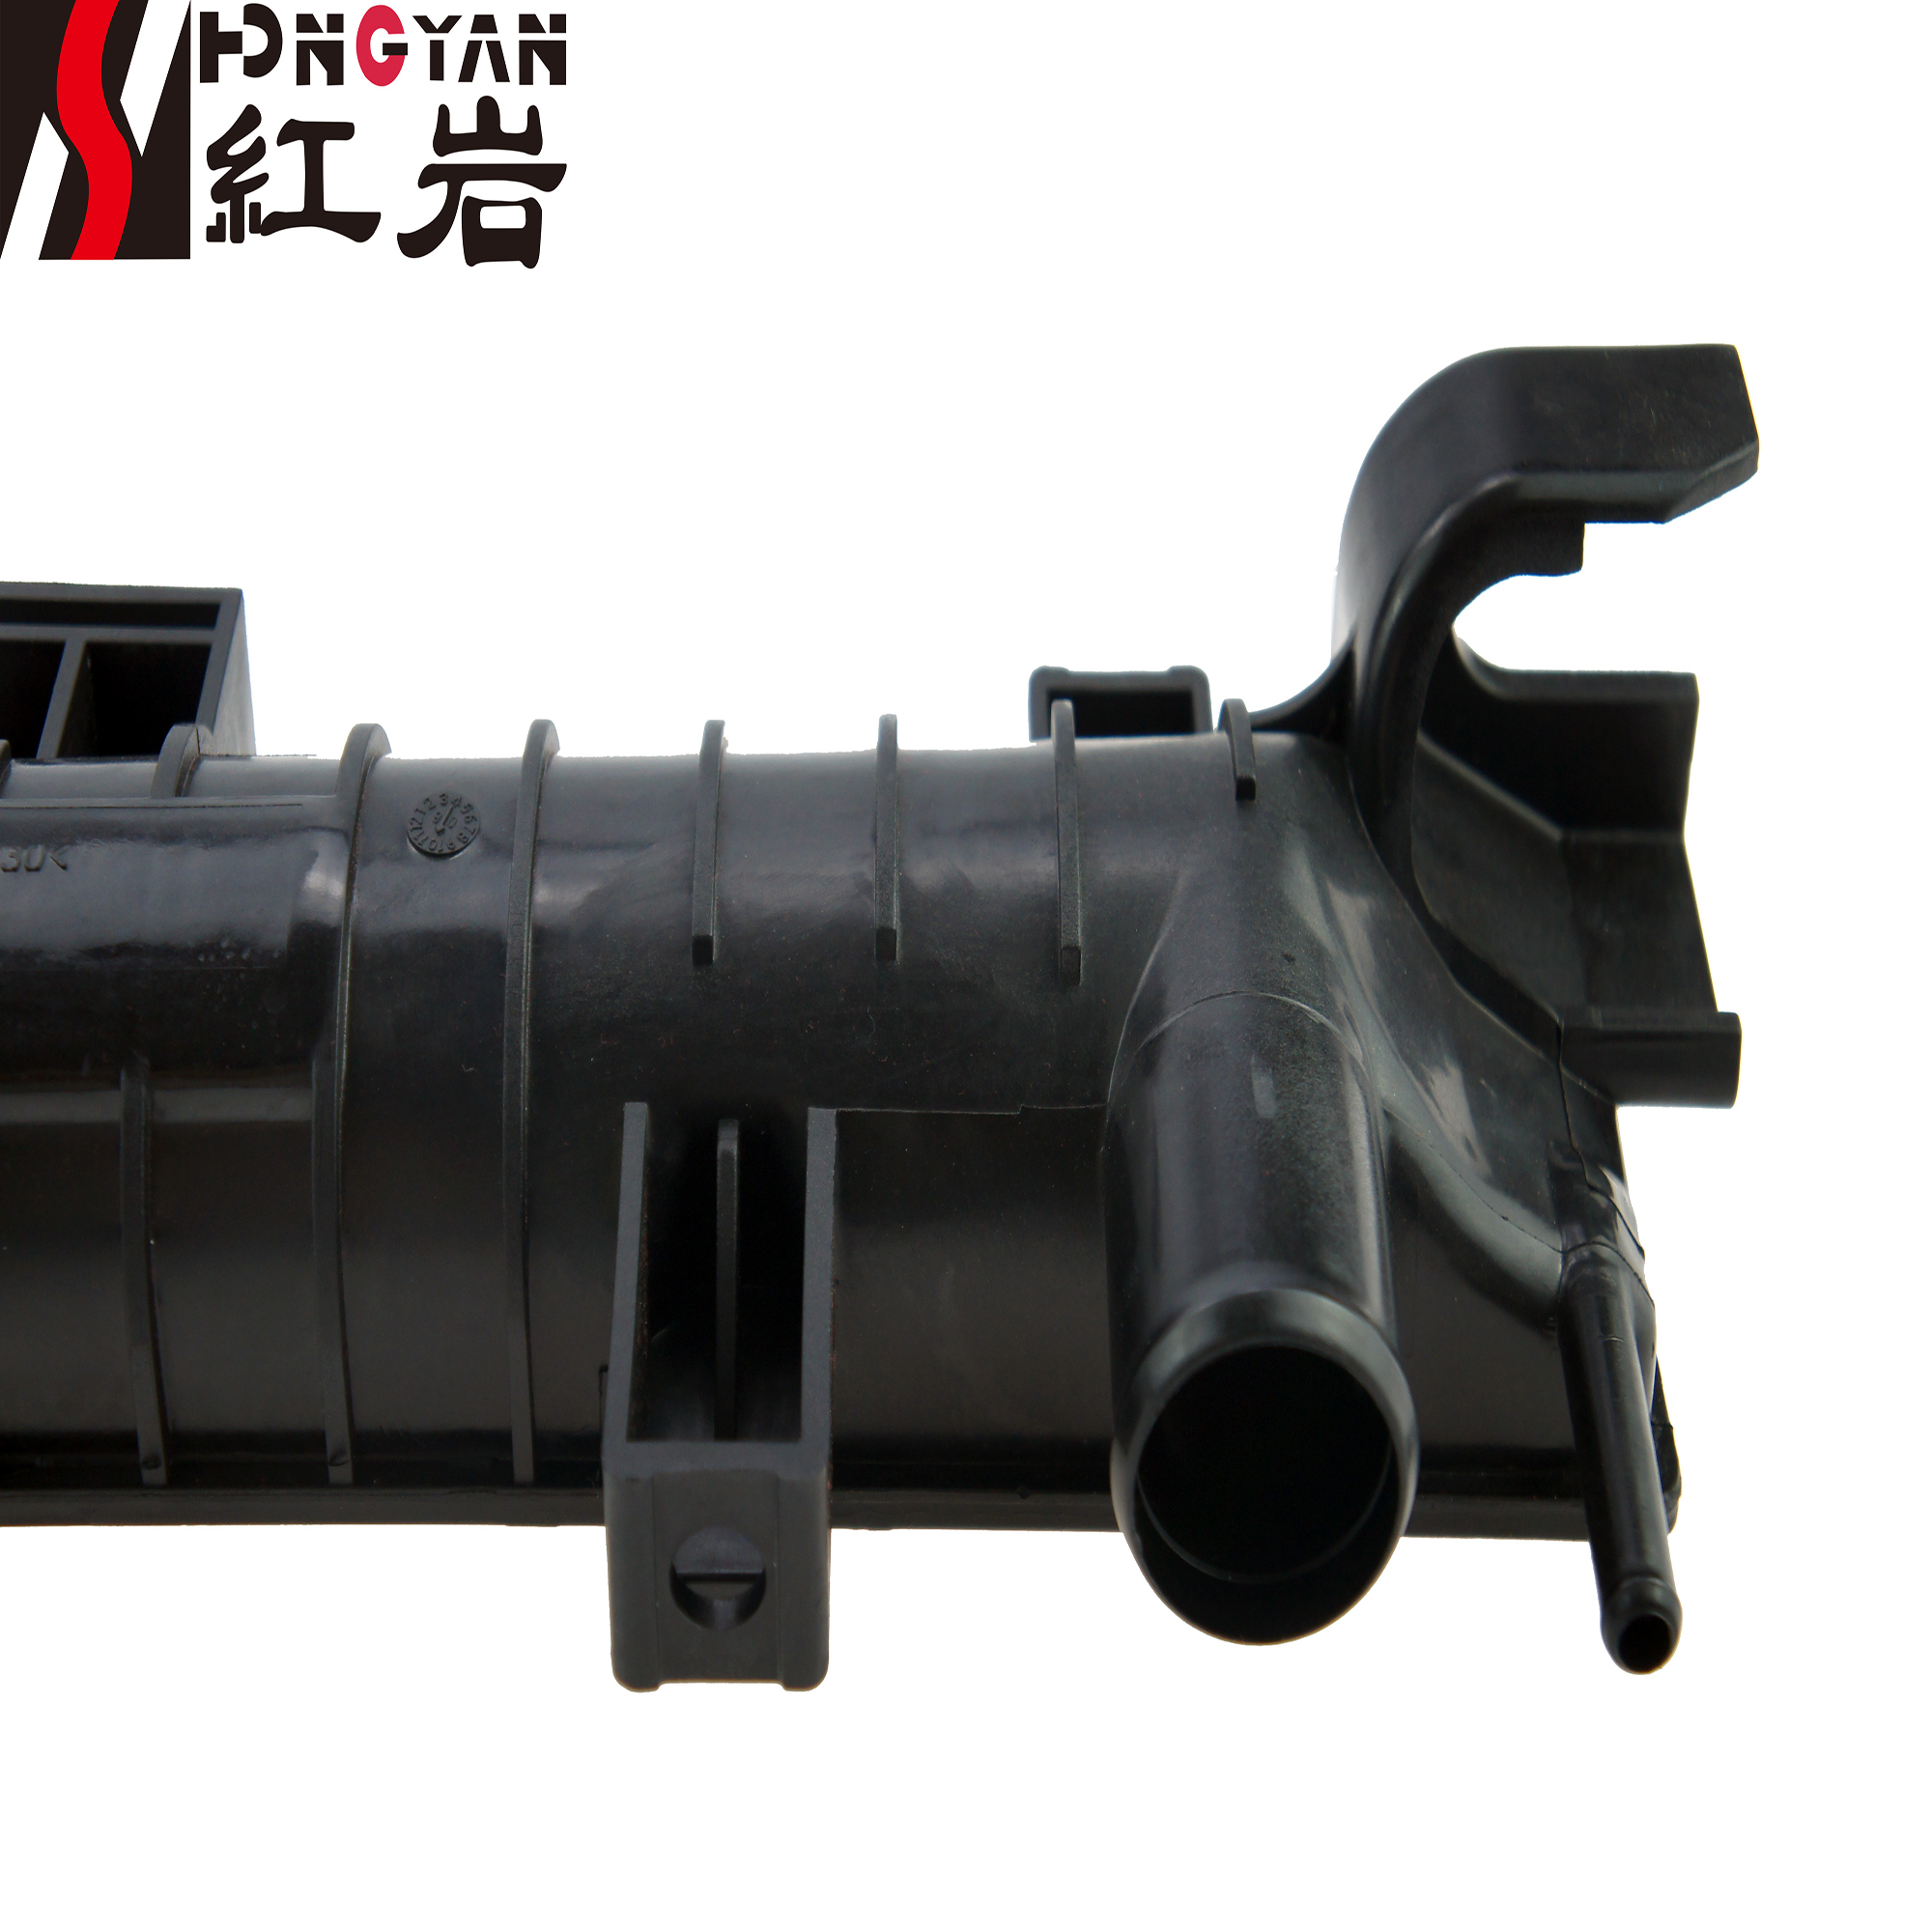 INLET PLASTIC TANKS FOR CHRYSLER LIBERTY 3.7 lts V6 RADIATORS